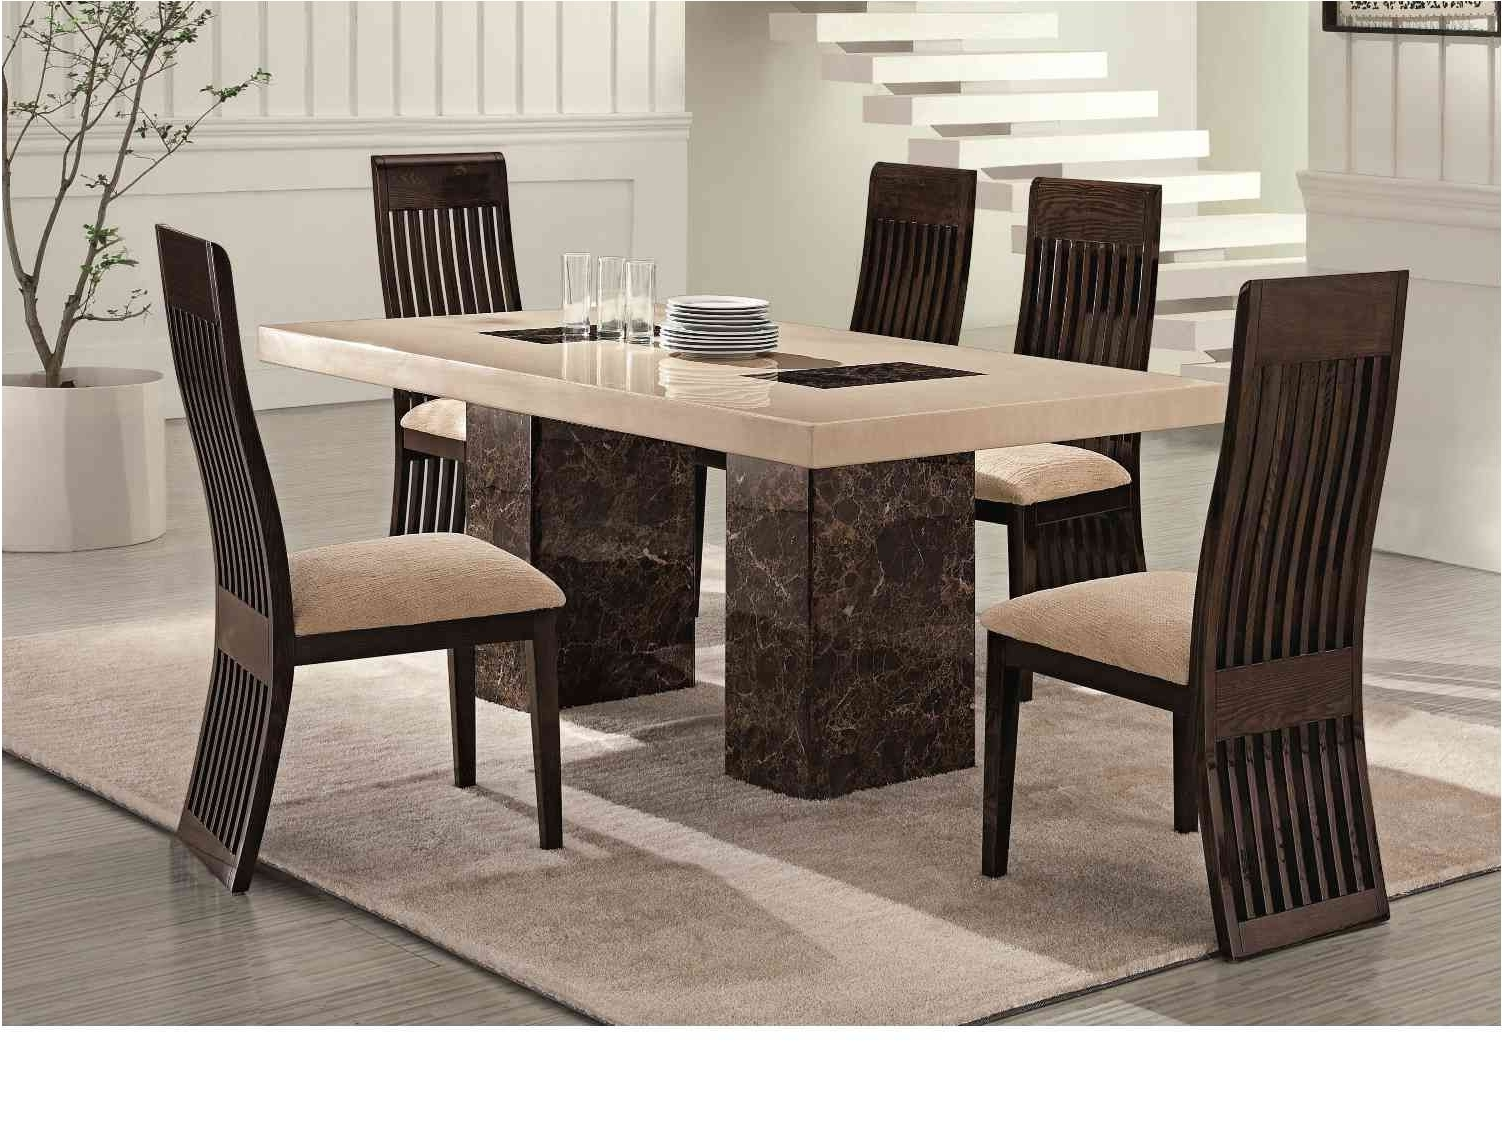 Best And Newest Unusual Dining Tables For Sale With Brilliant Unique Dining Room Tables – Unique Dining Room Tables For (View 8 of 25)